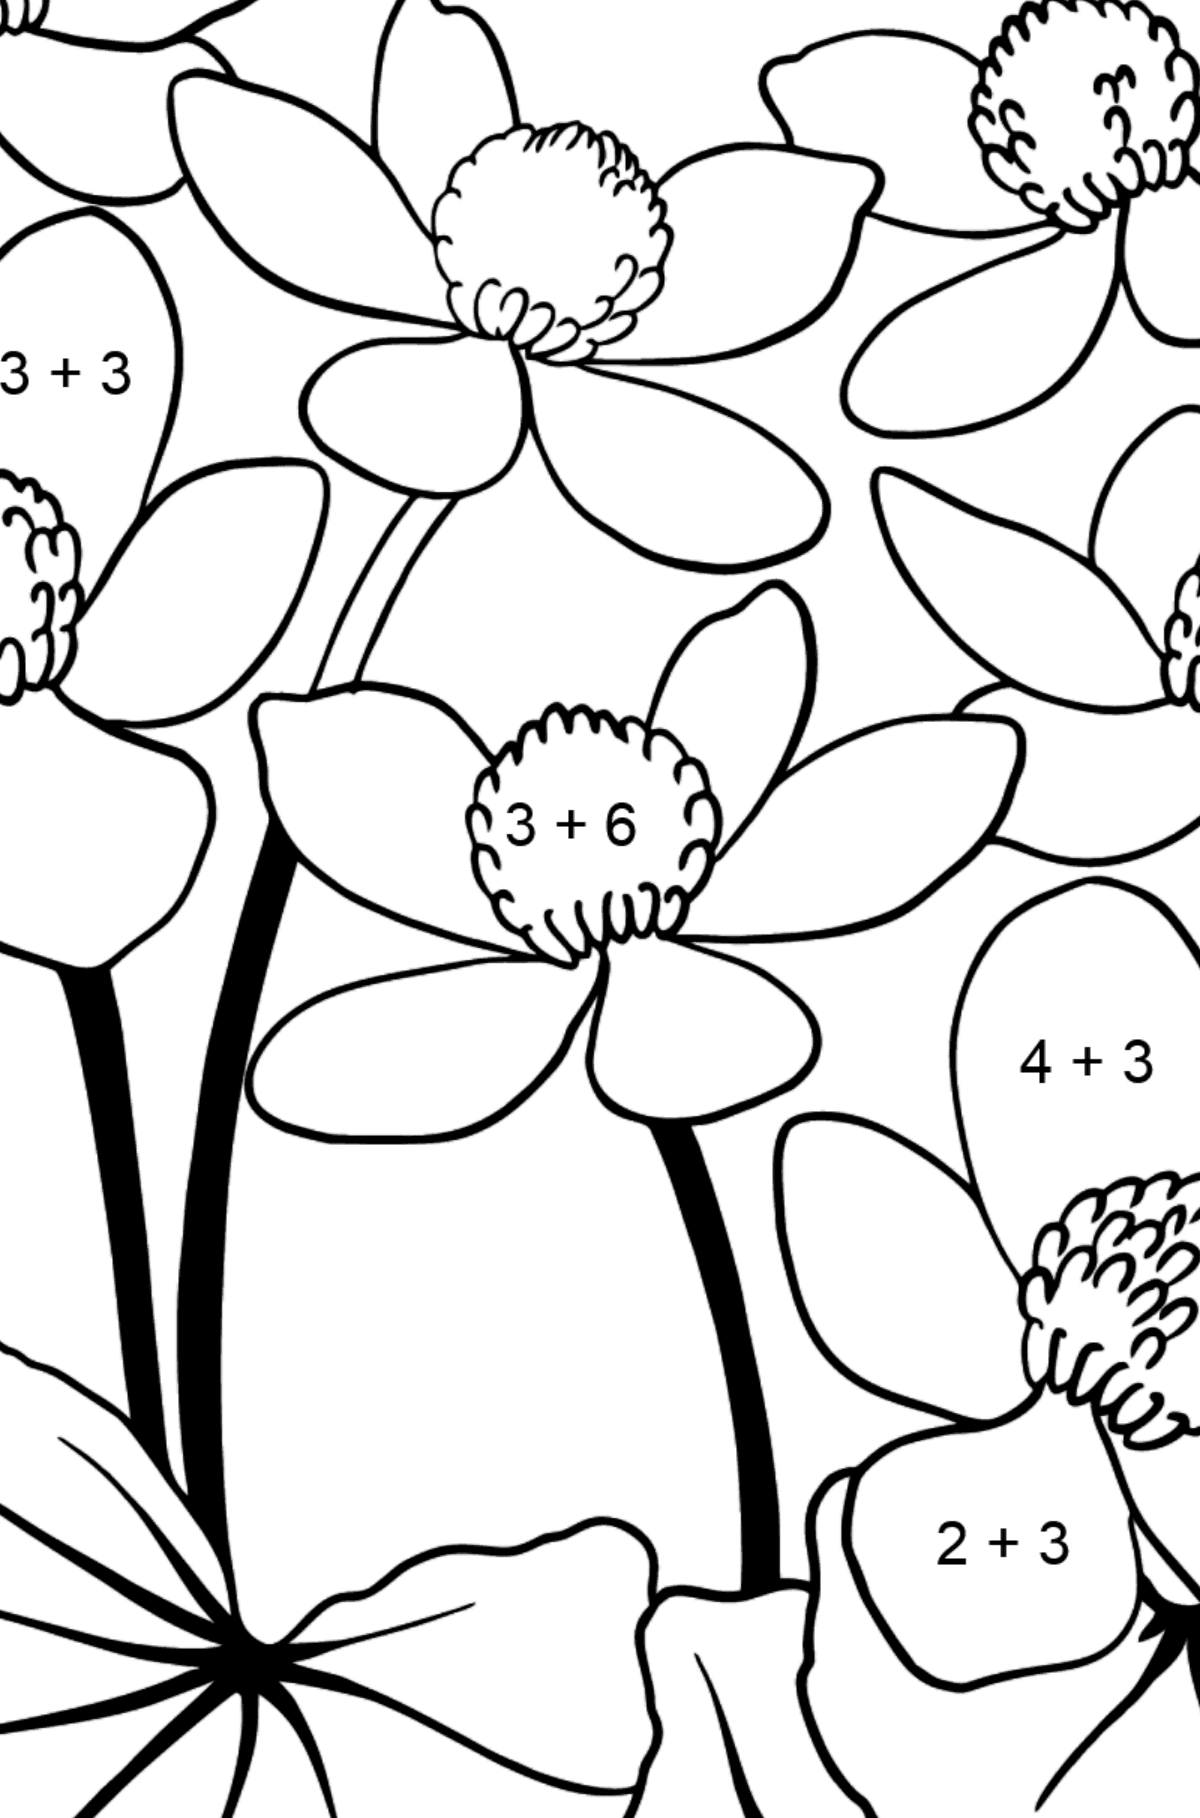 Flower Coloring Page - A Yellow and Red Marsh Marigold - Math Coloring - Addition for Kids